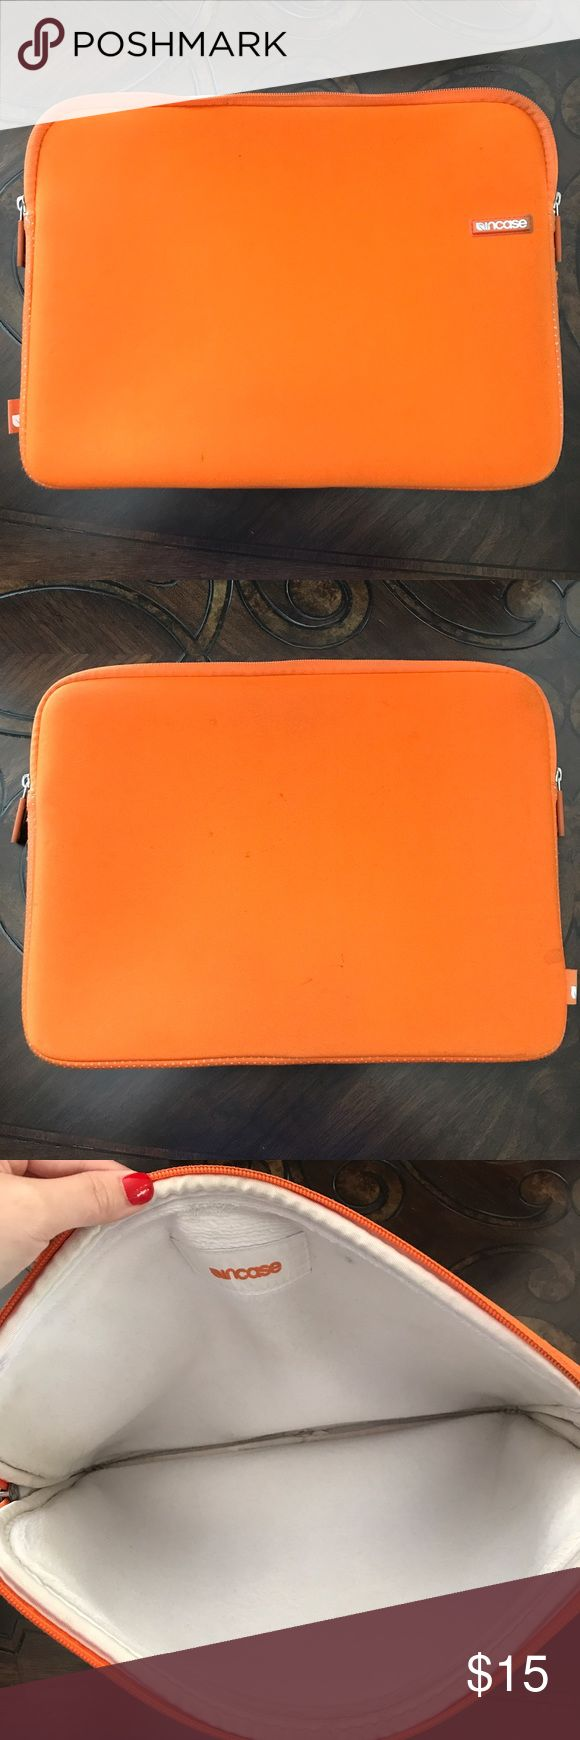 """Incase Orange Laptop Sleeve Orange incase 13"""" laptop case/sleeve. Worn on the outside a little, but still in very good condition as far as being able to protect your laptop! Neoprene material and very well cushioned on the inside. Make me an offer! incase Accessories Laptop Cases"""